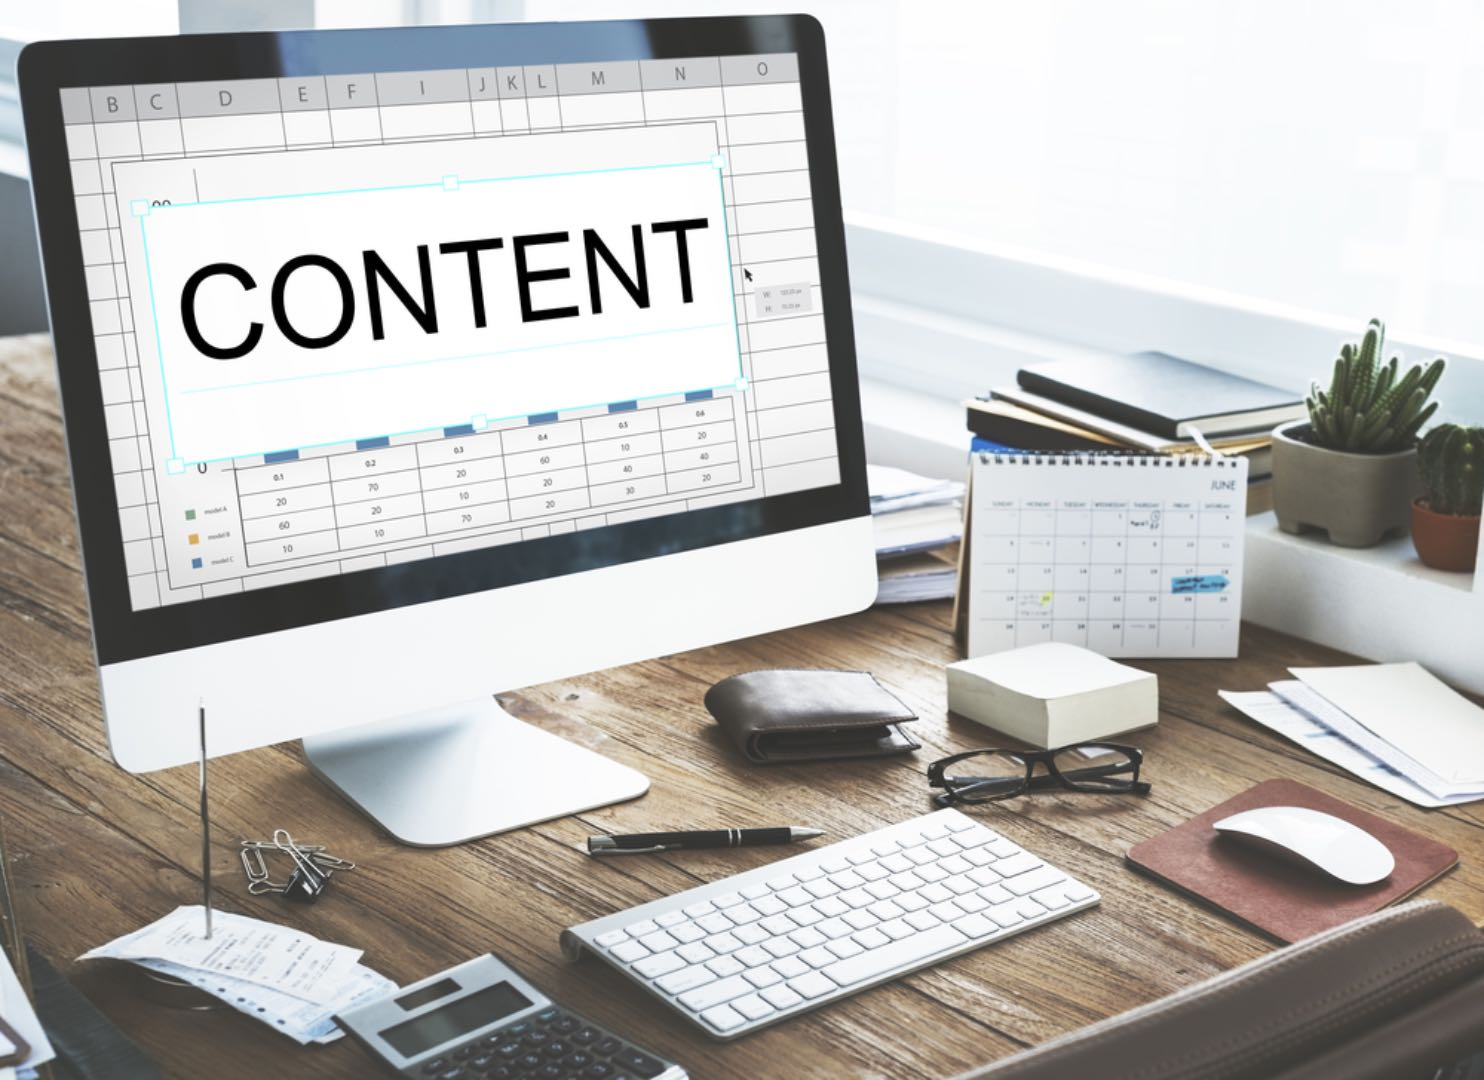 content calendars are vital for successful content marketing campaigns